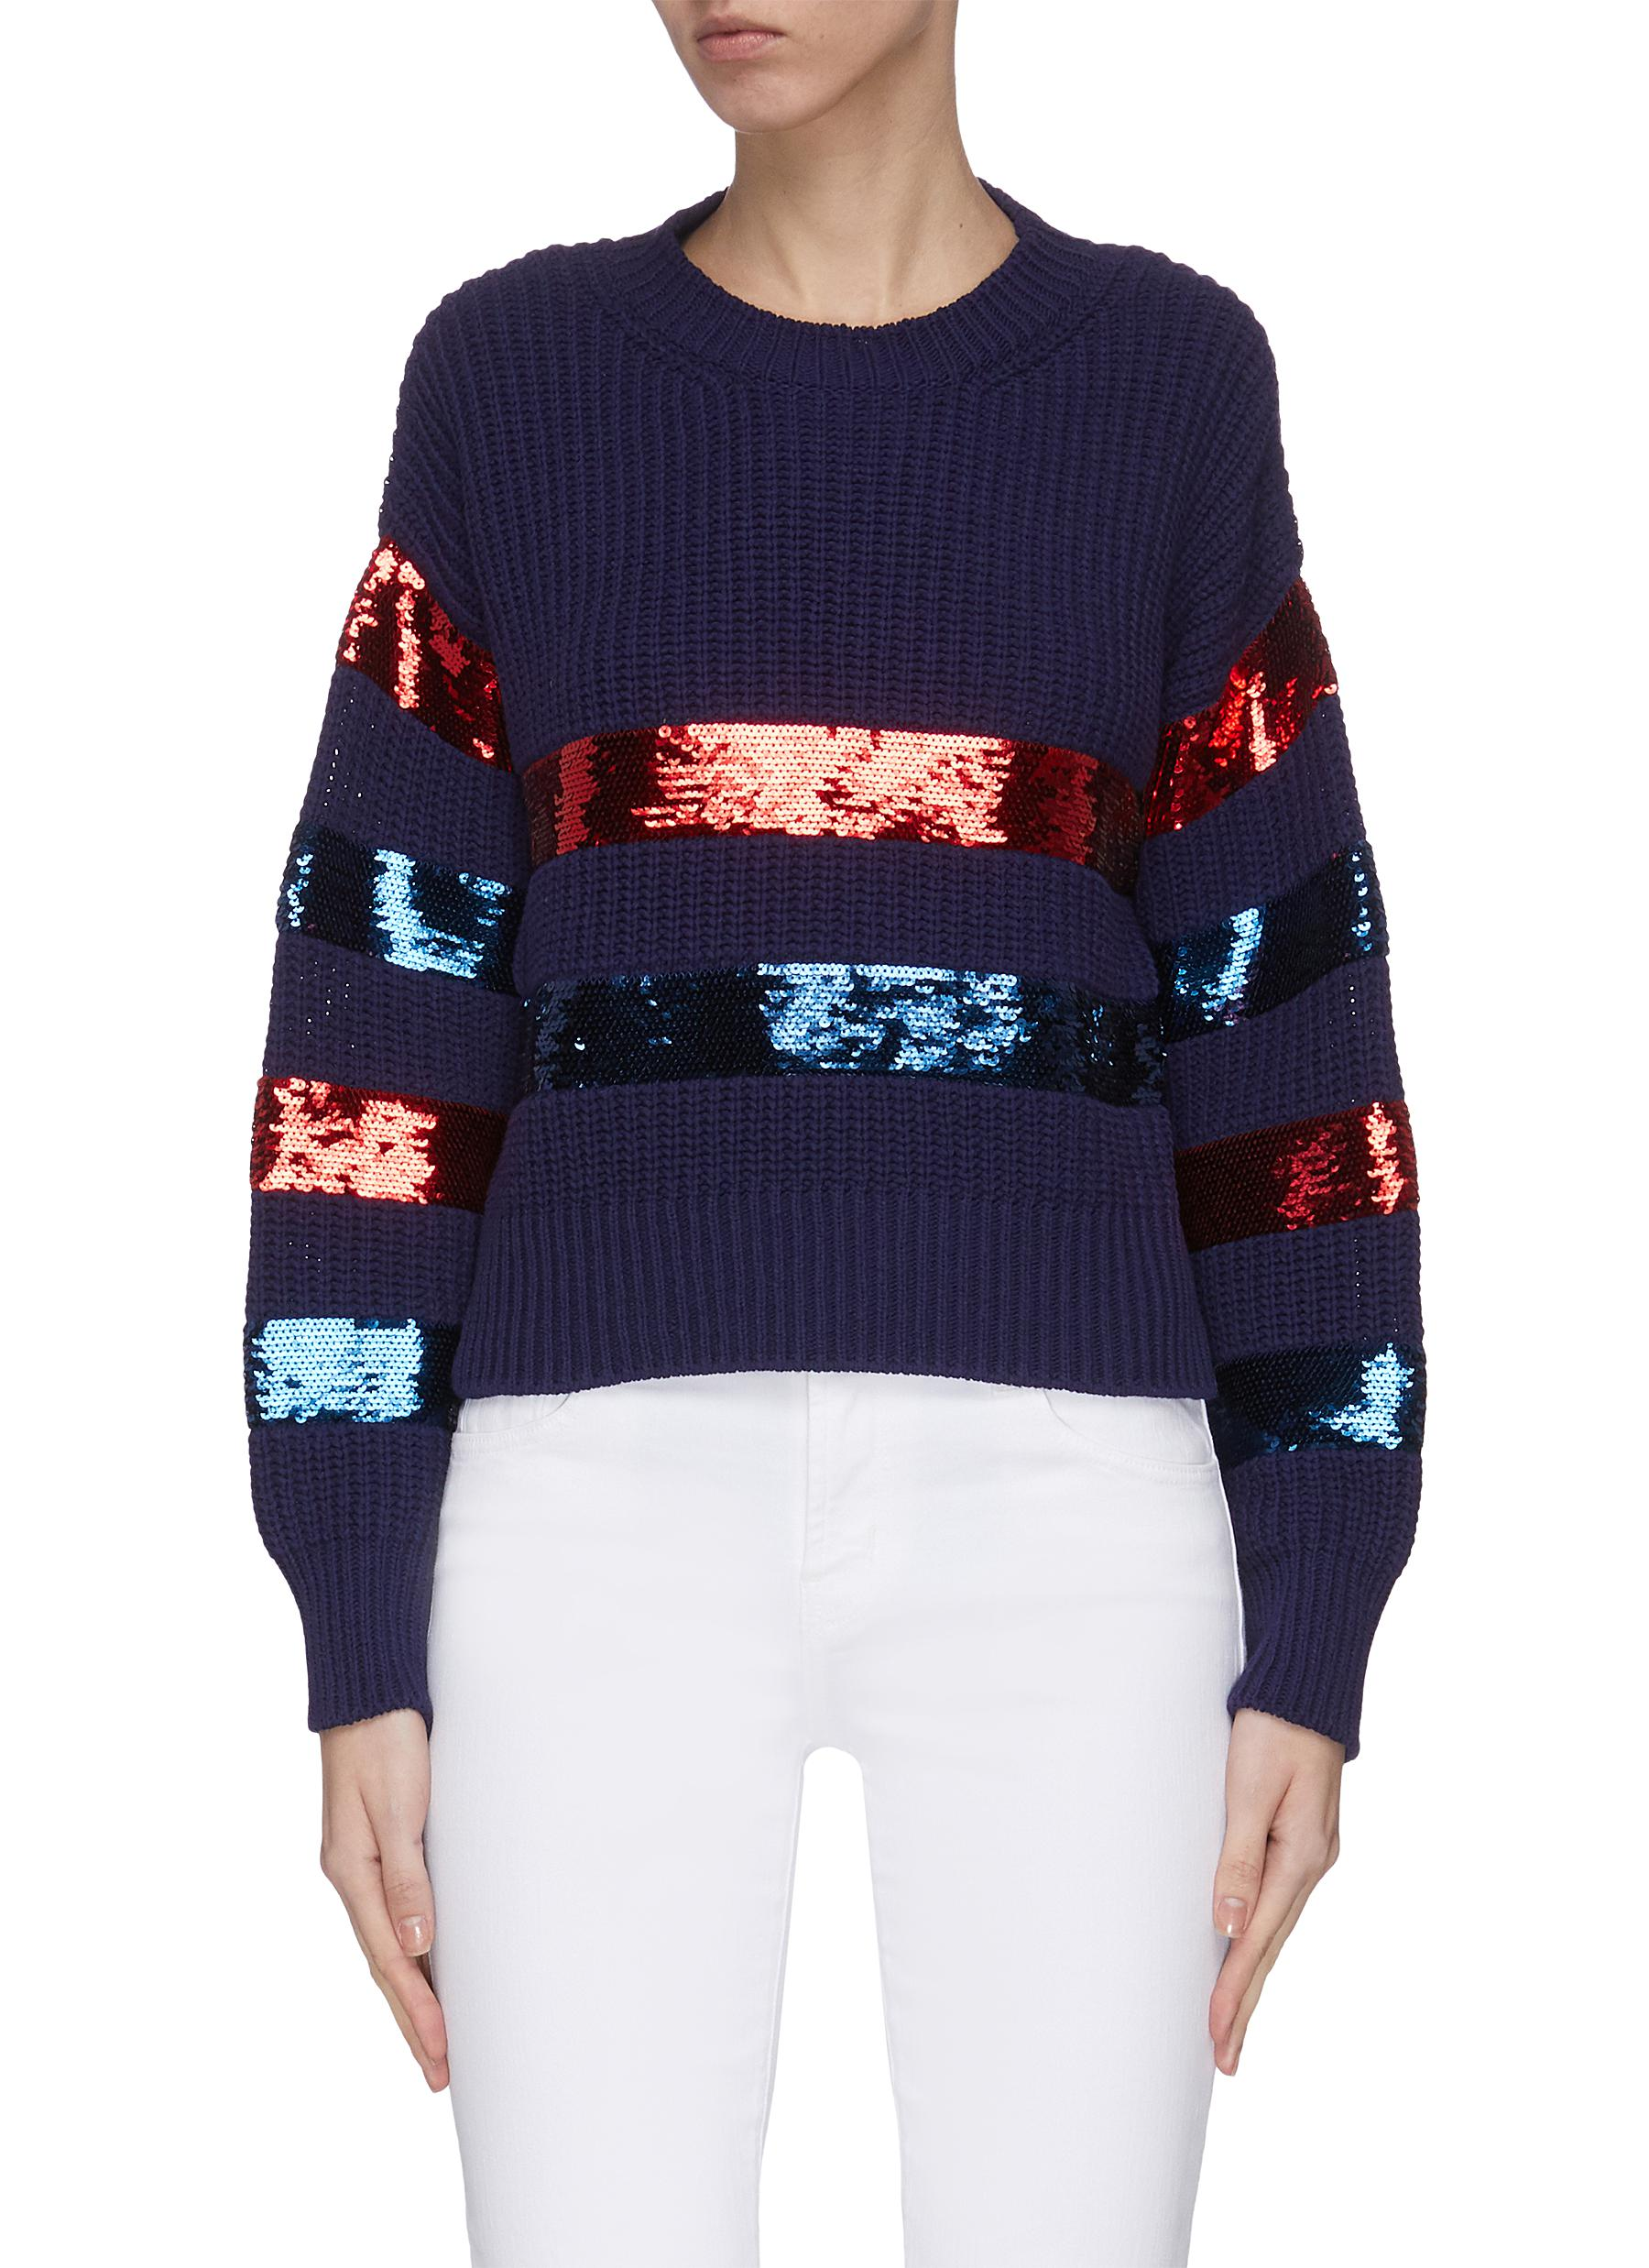 Buy Philosophy Di Lorenzo Serafini Knitwear 'Breton' sequin embellished stripe sweater